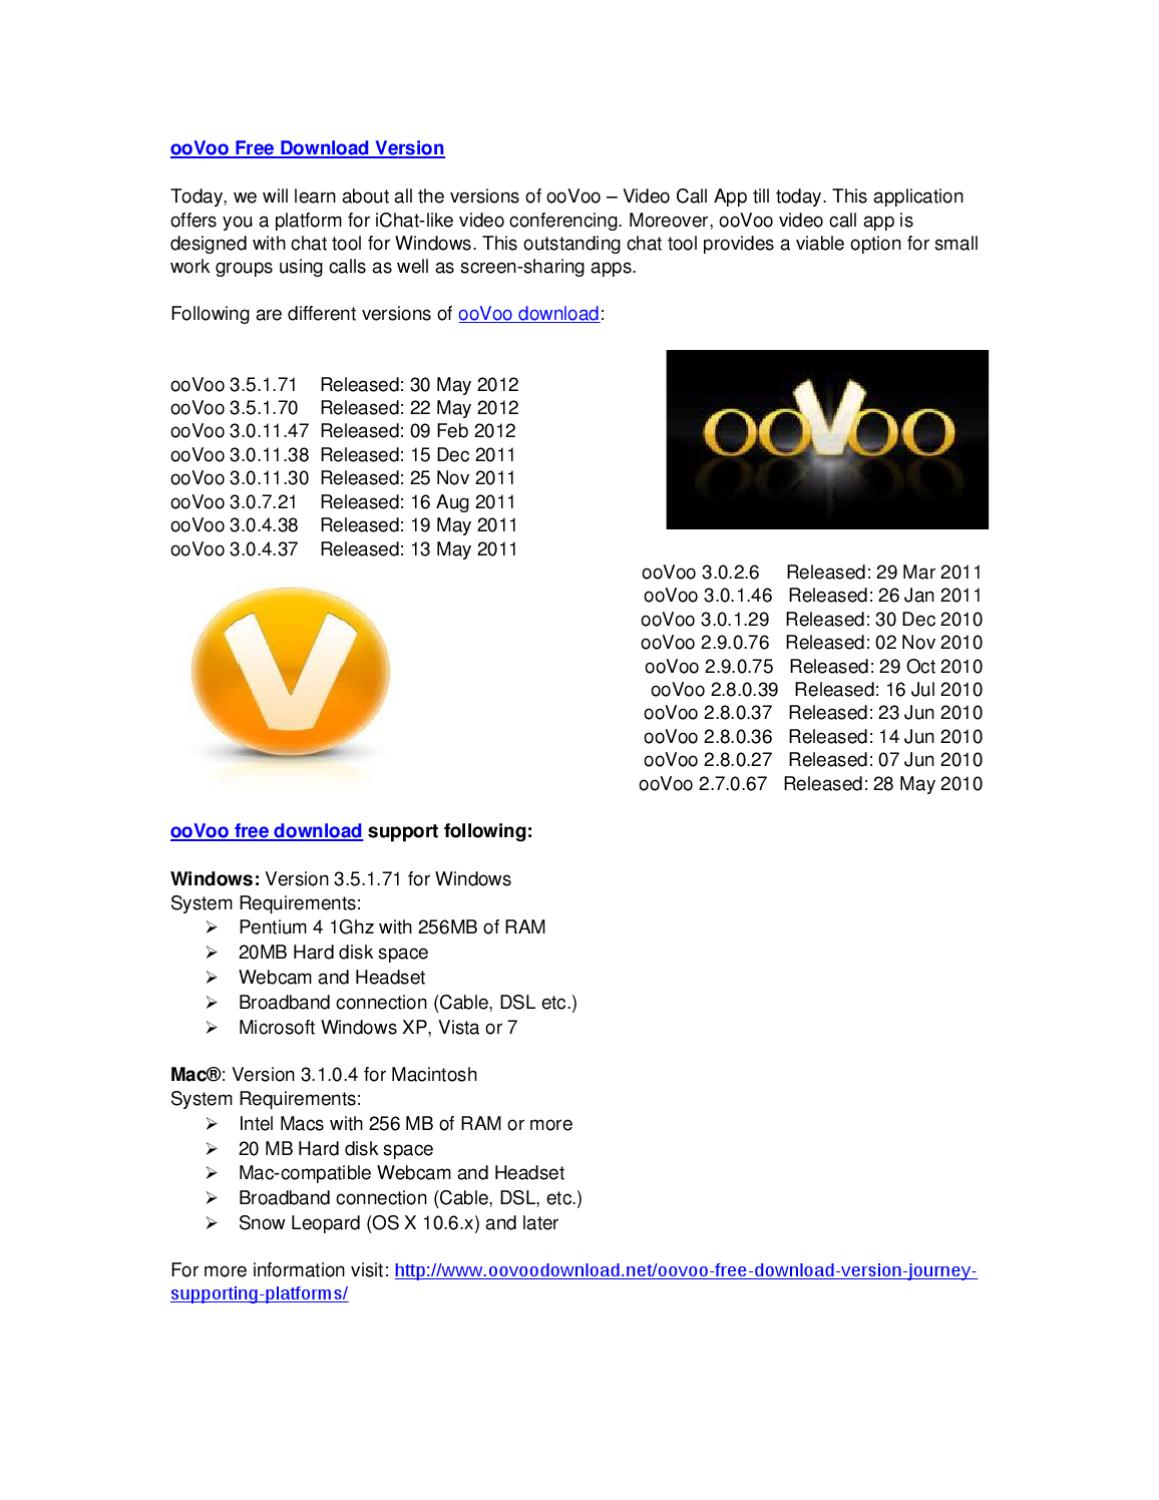 Oovoo free download version by peter sam issuu.